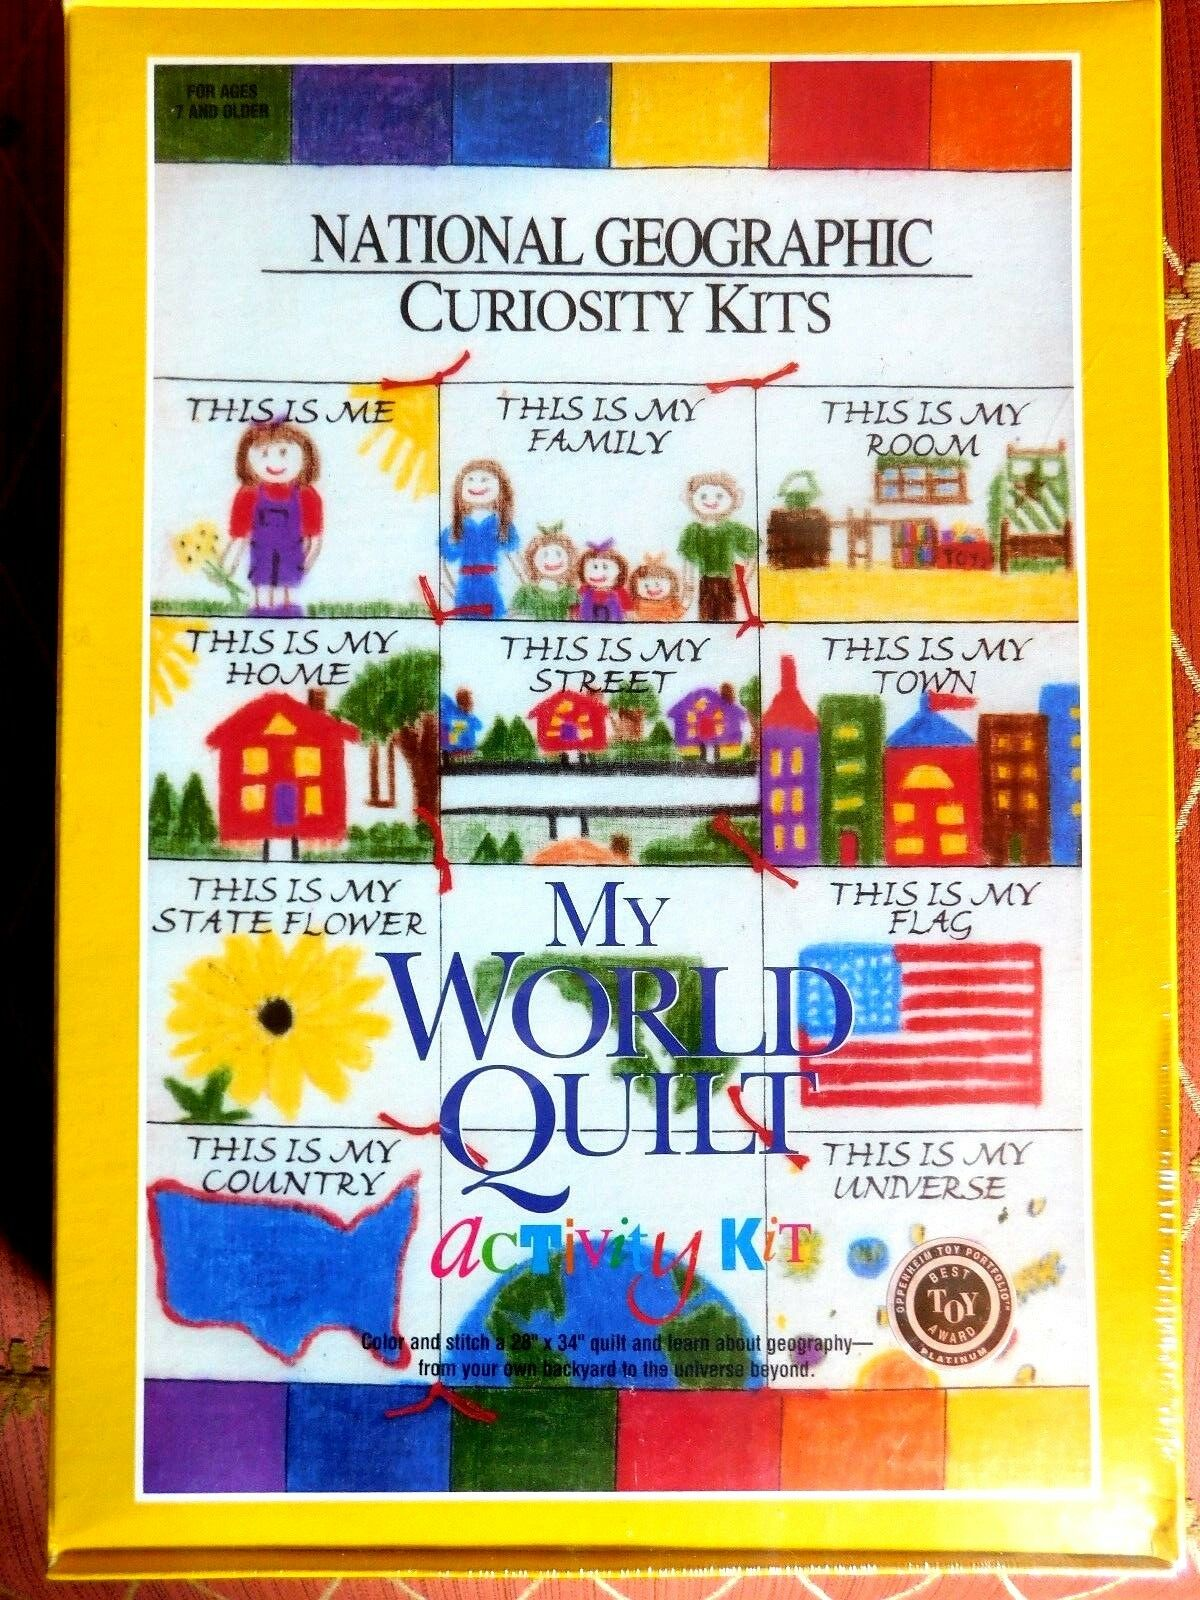 National Geographic Curiosity Kits My World Quilt Activity Kit